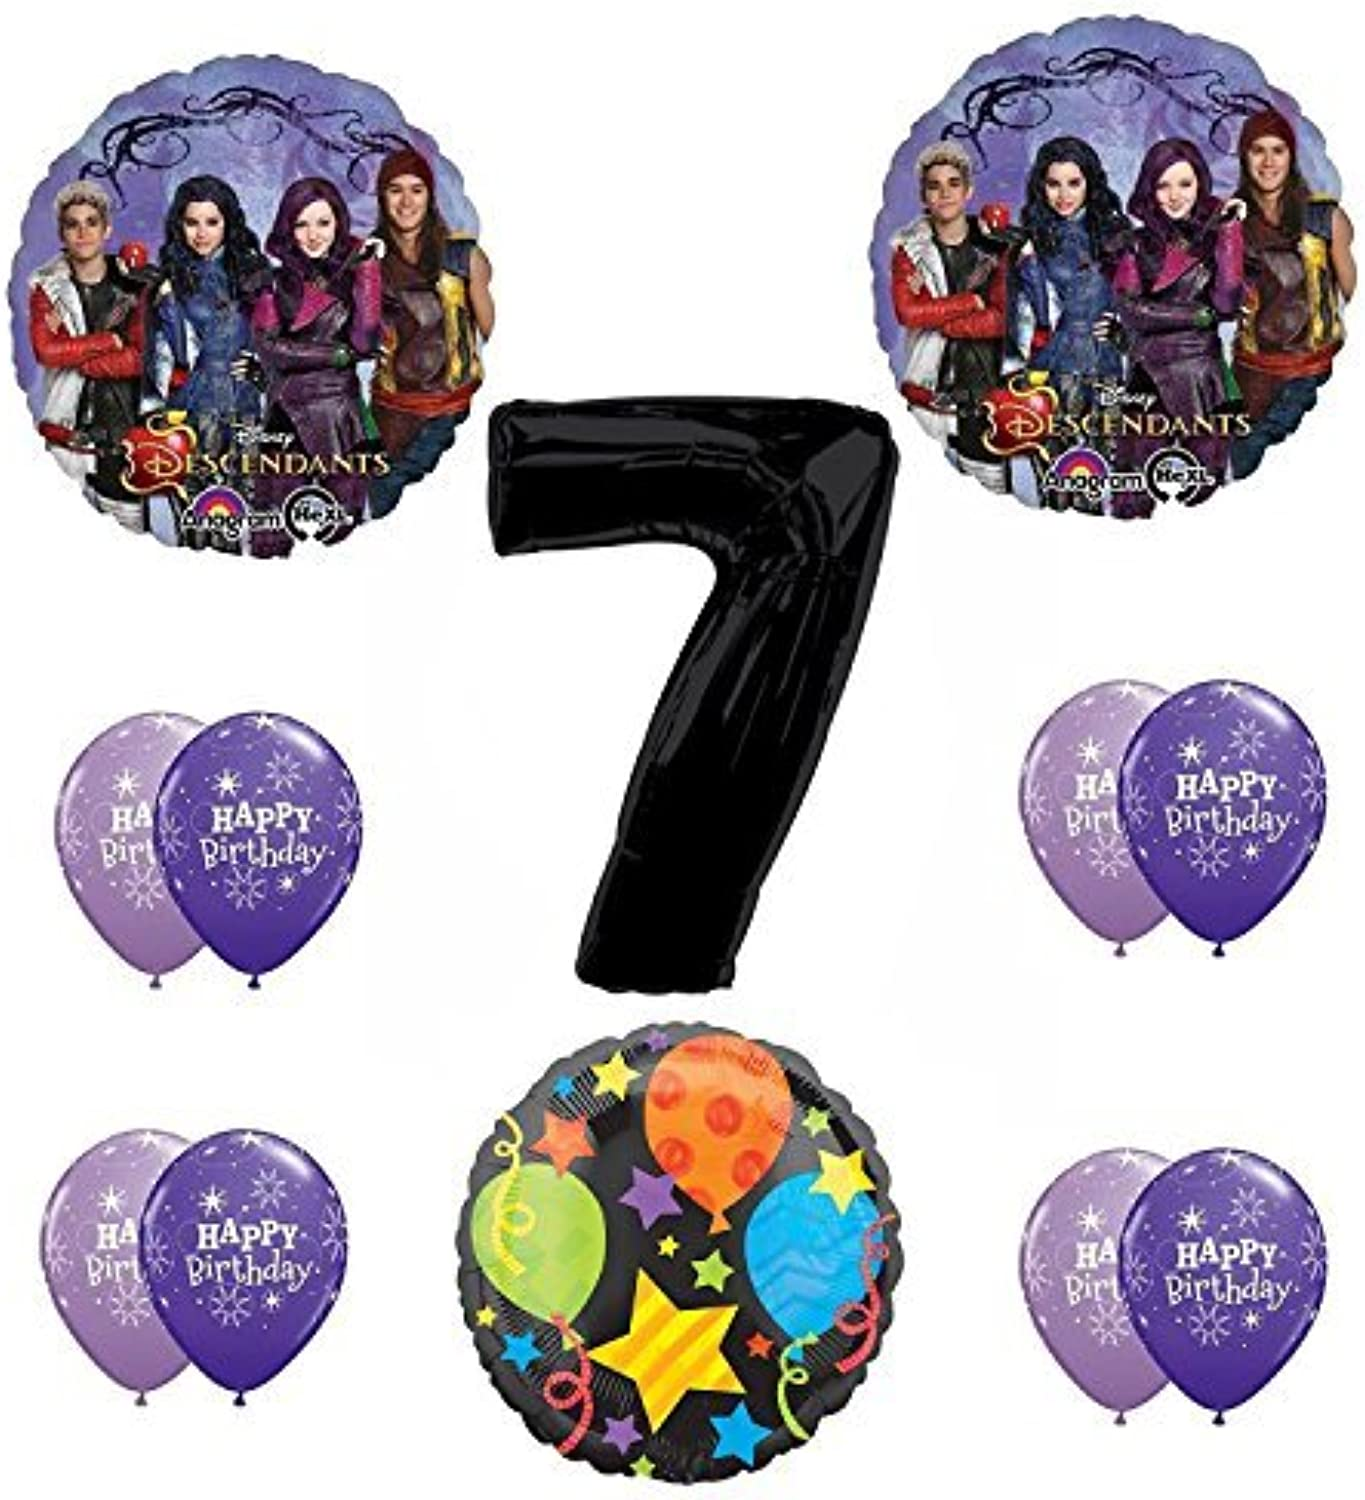 Disney The Descendants 7th Happy Birthday Party supplies Balloon Decoration Kit